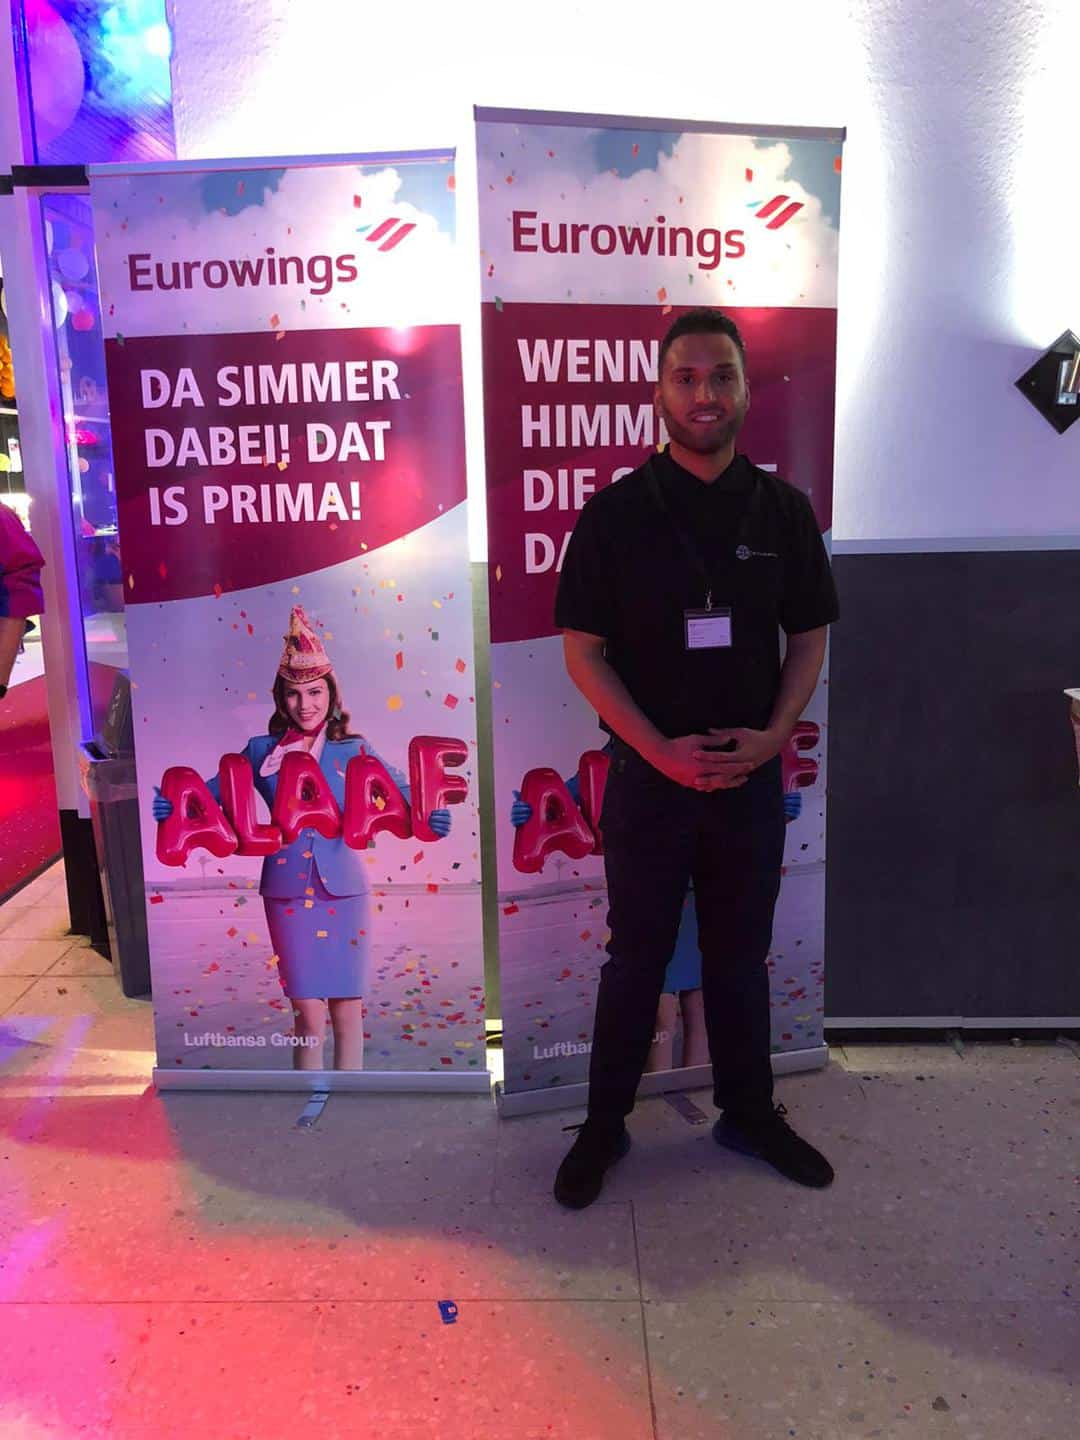 Eurowings_RAD_Referenz